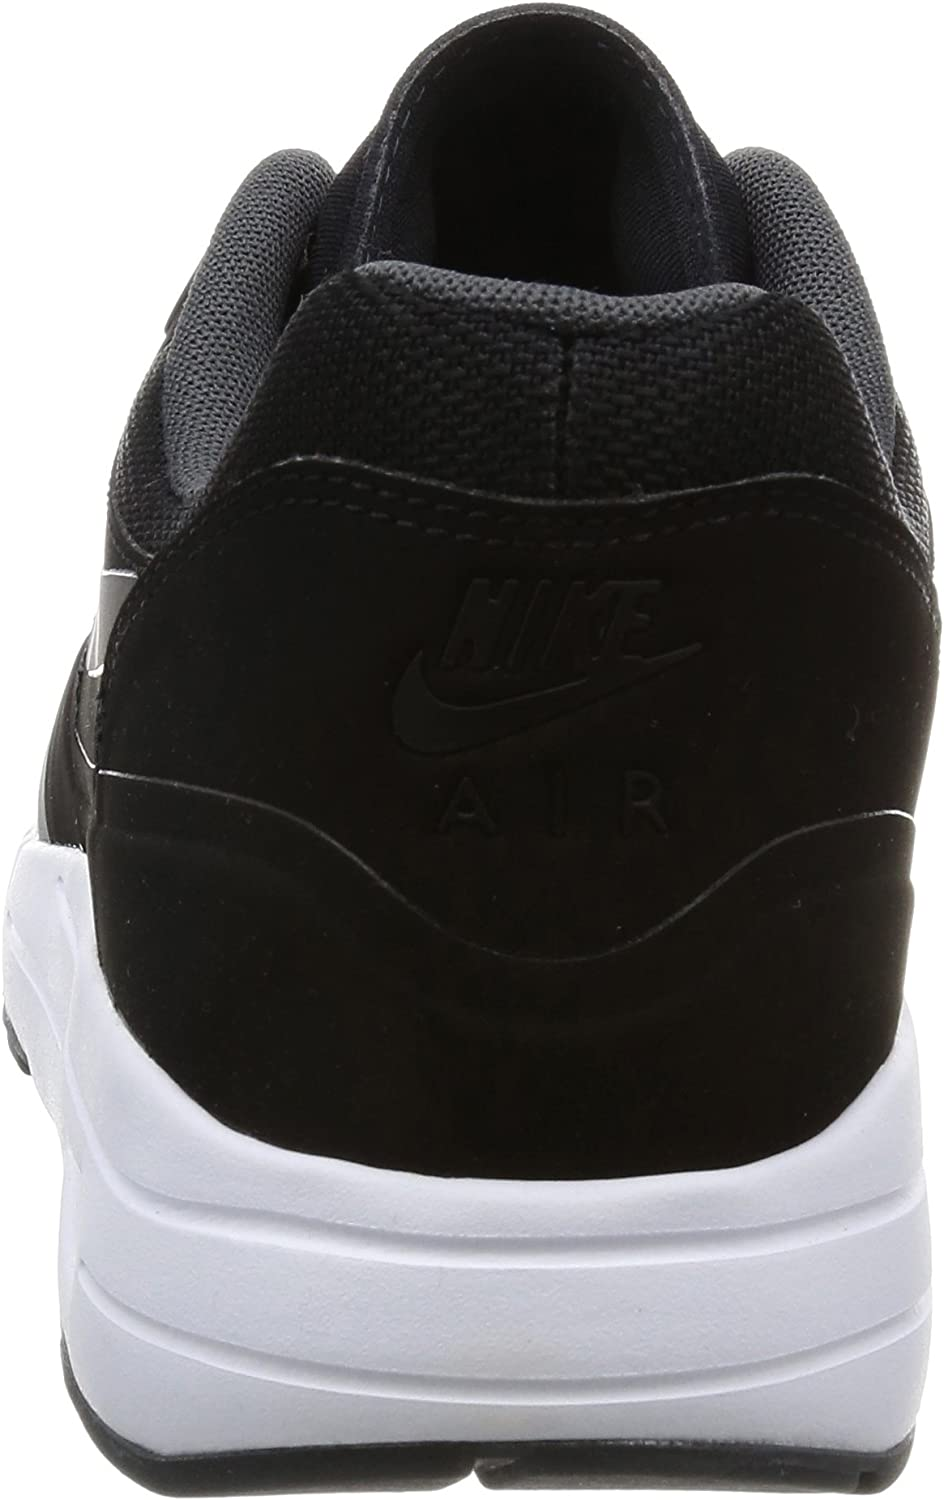 Nike Mens Air Max 1 Ultra 2.0 SE Padded Insole Lifestyle Fashion Sneakers